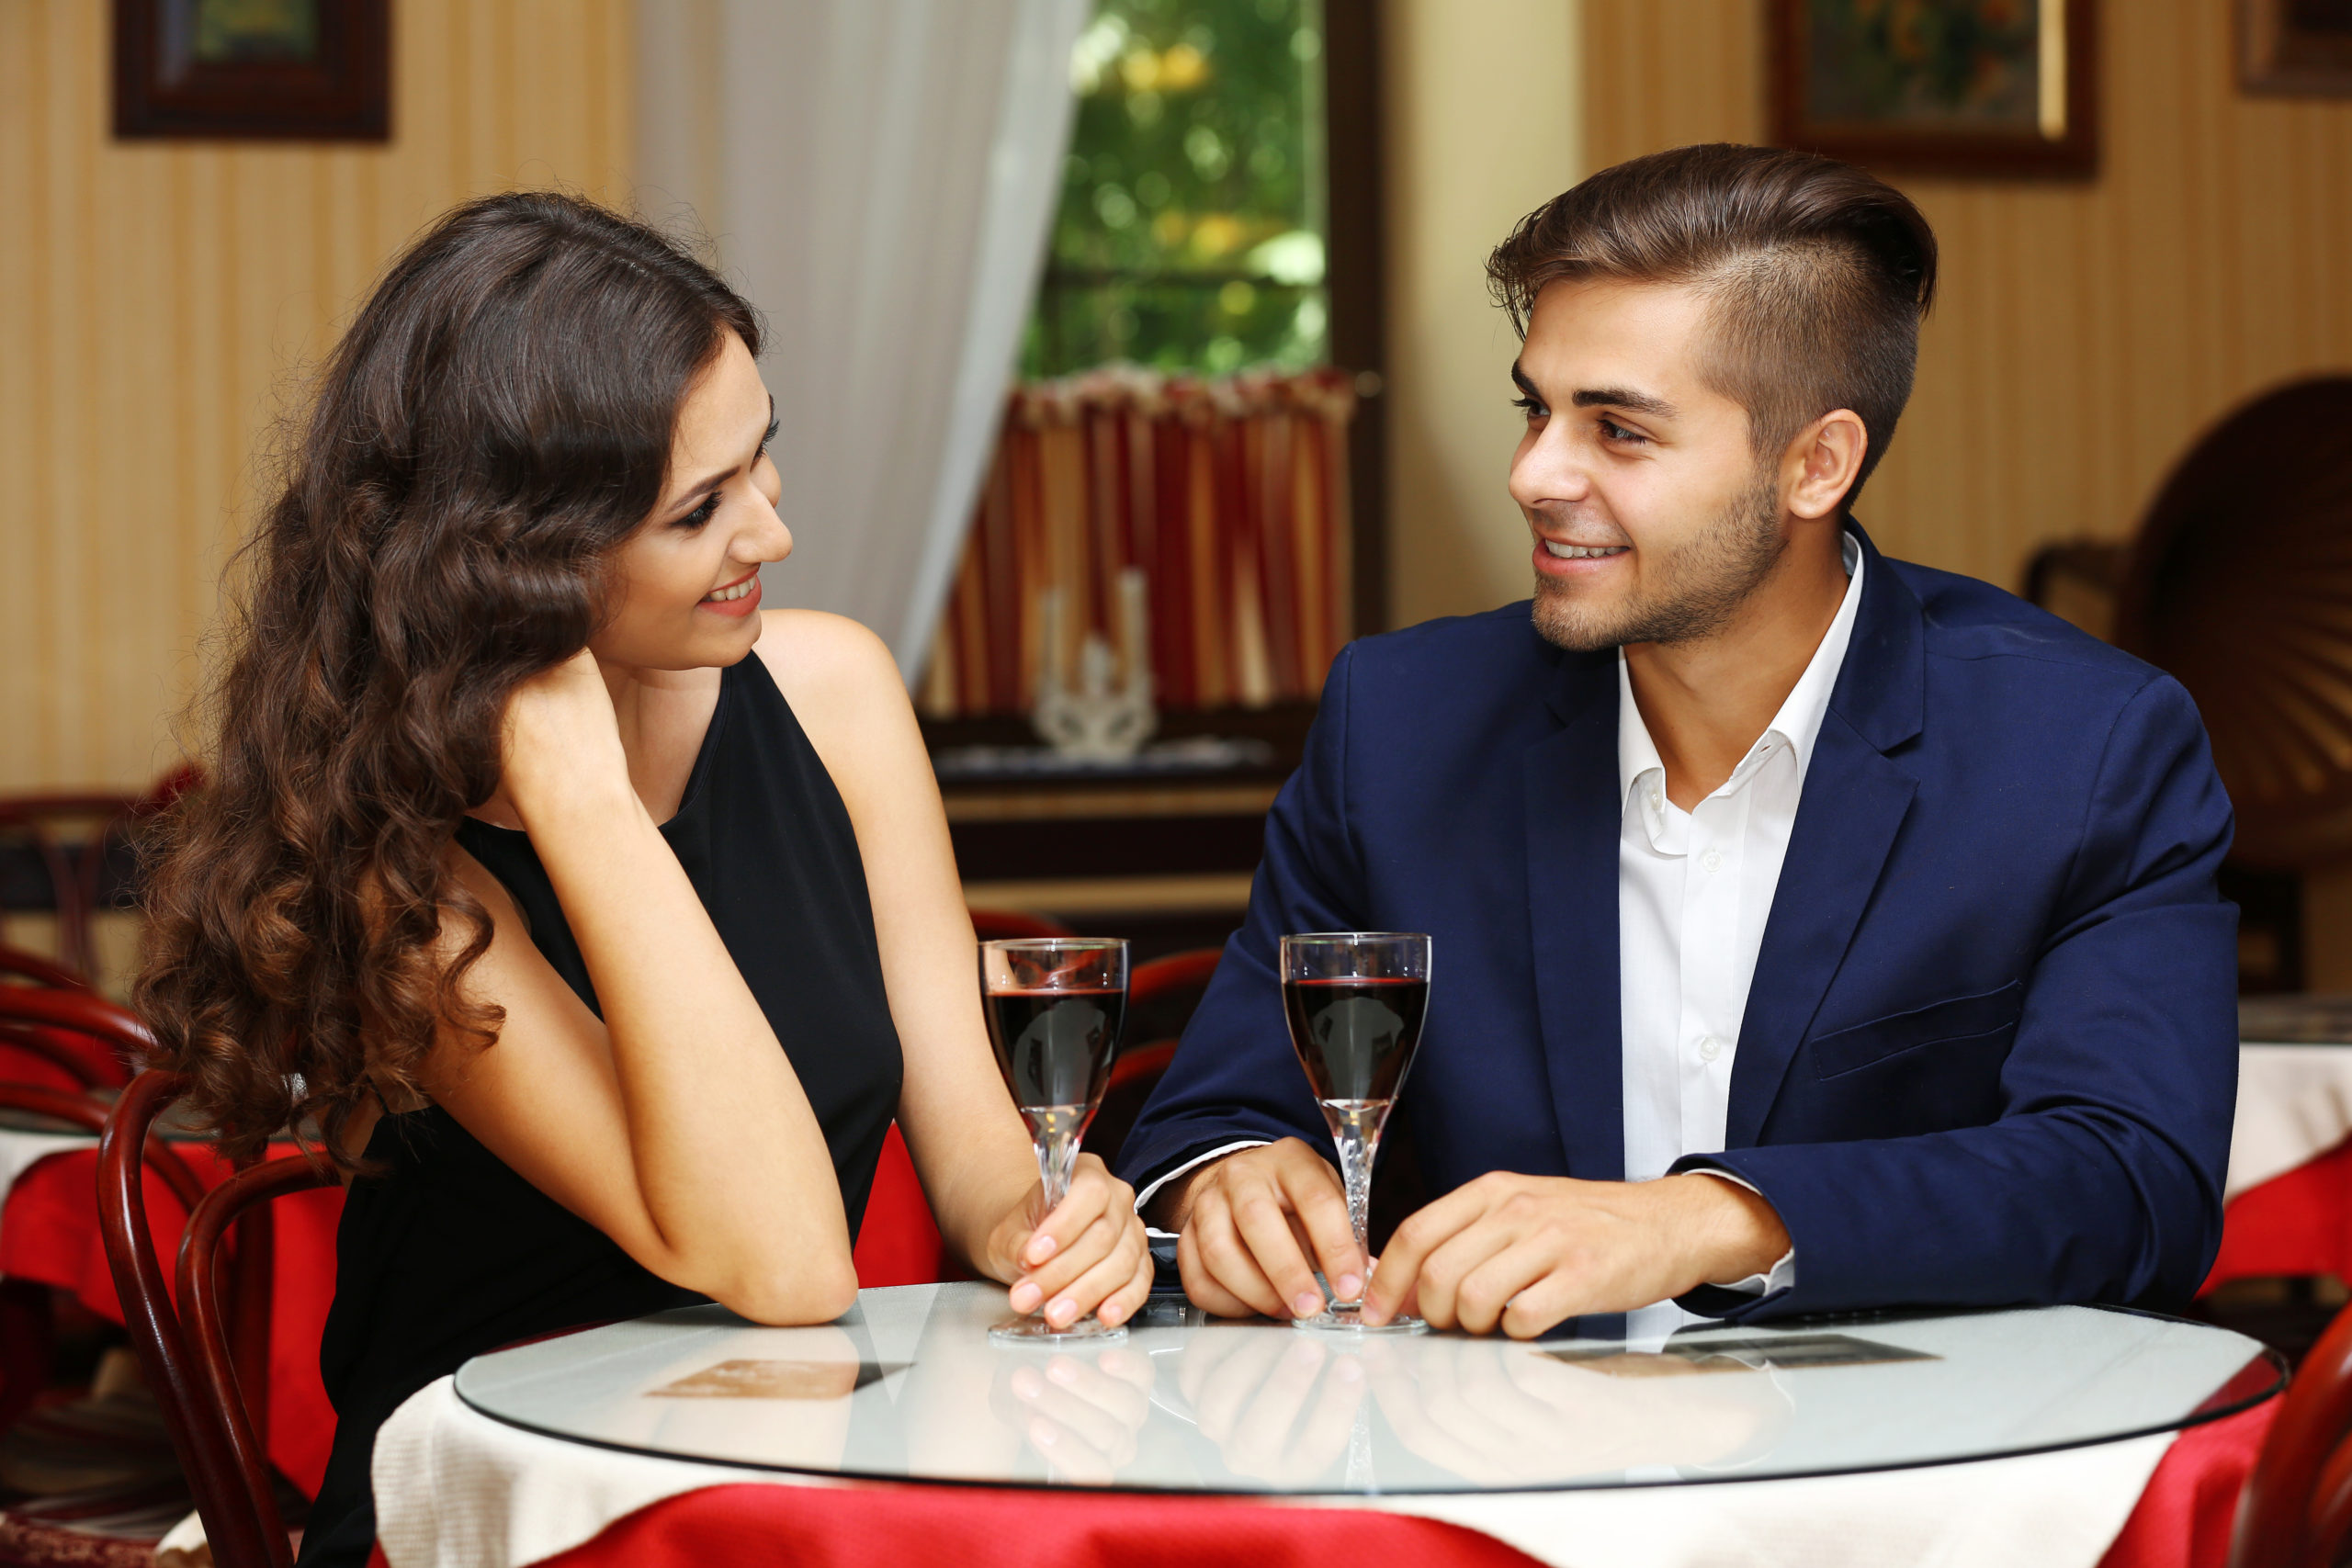 attractive-young-couple-dating-restaurant-329814443